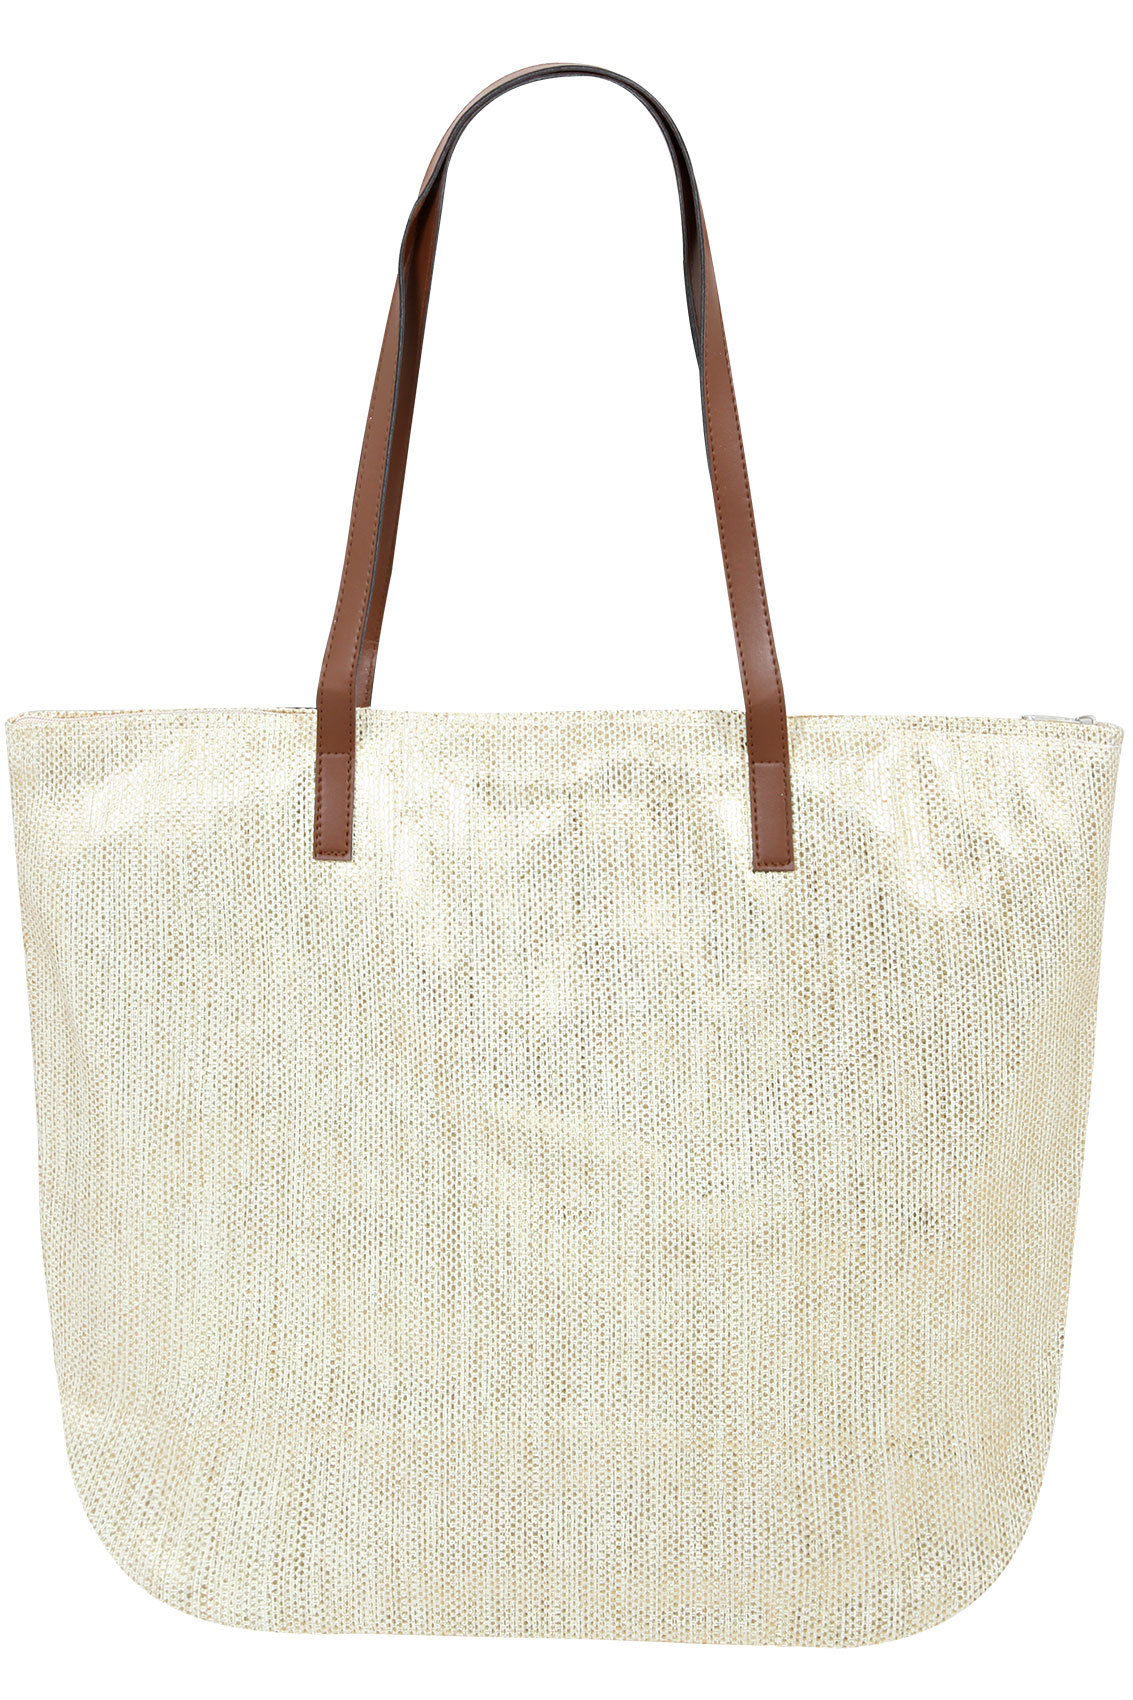 Metallic Straw Beach Bag With PU Straps